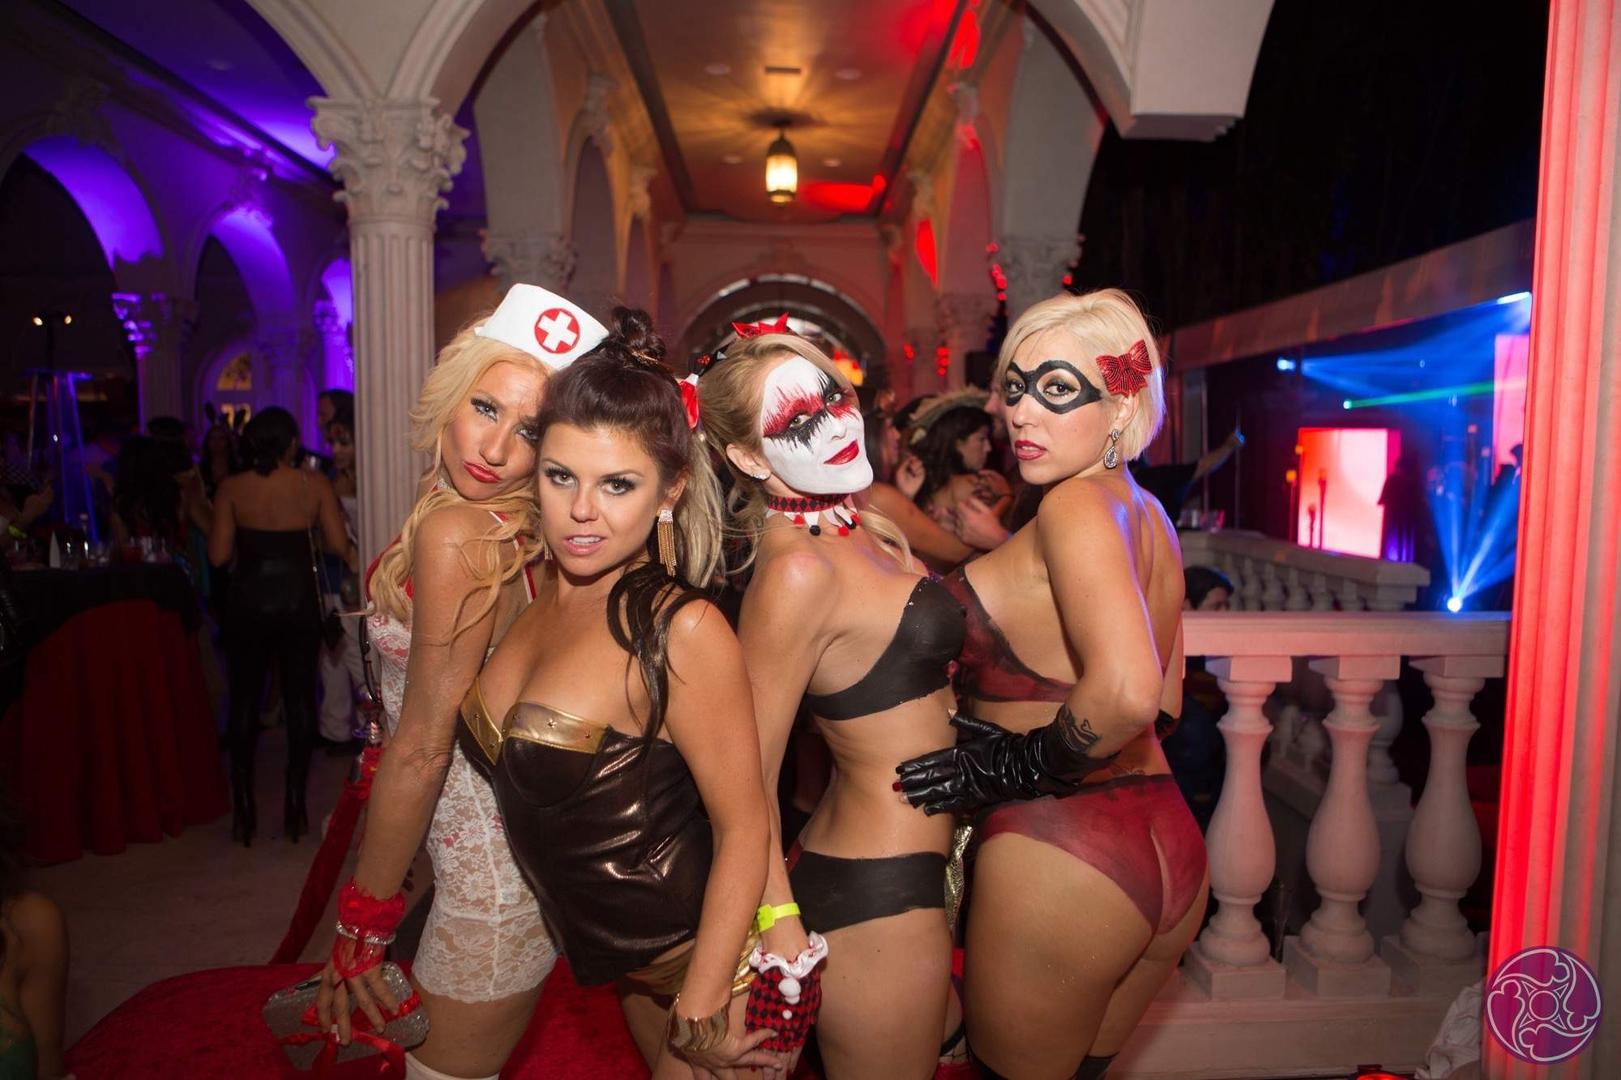 Maxim Halloween Official Tickets and VIP Tables at VIPexclusives.com. Come join the party.